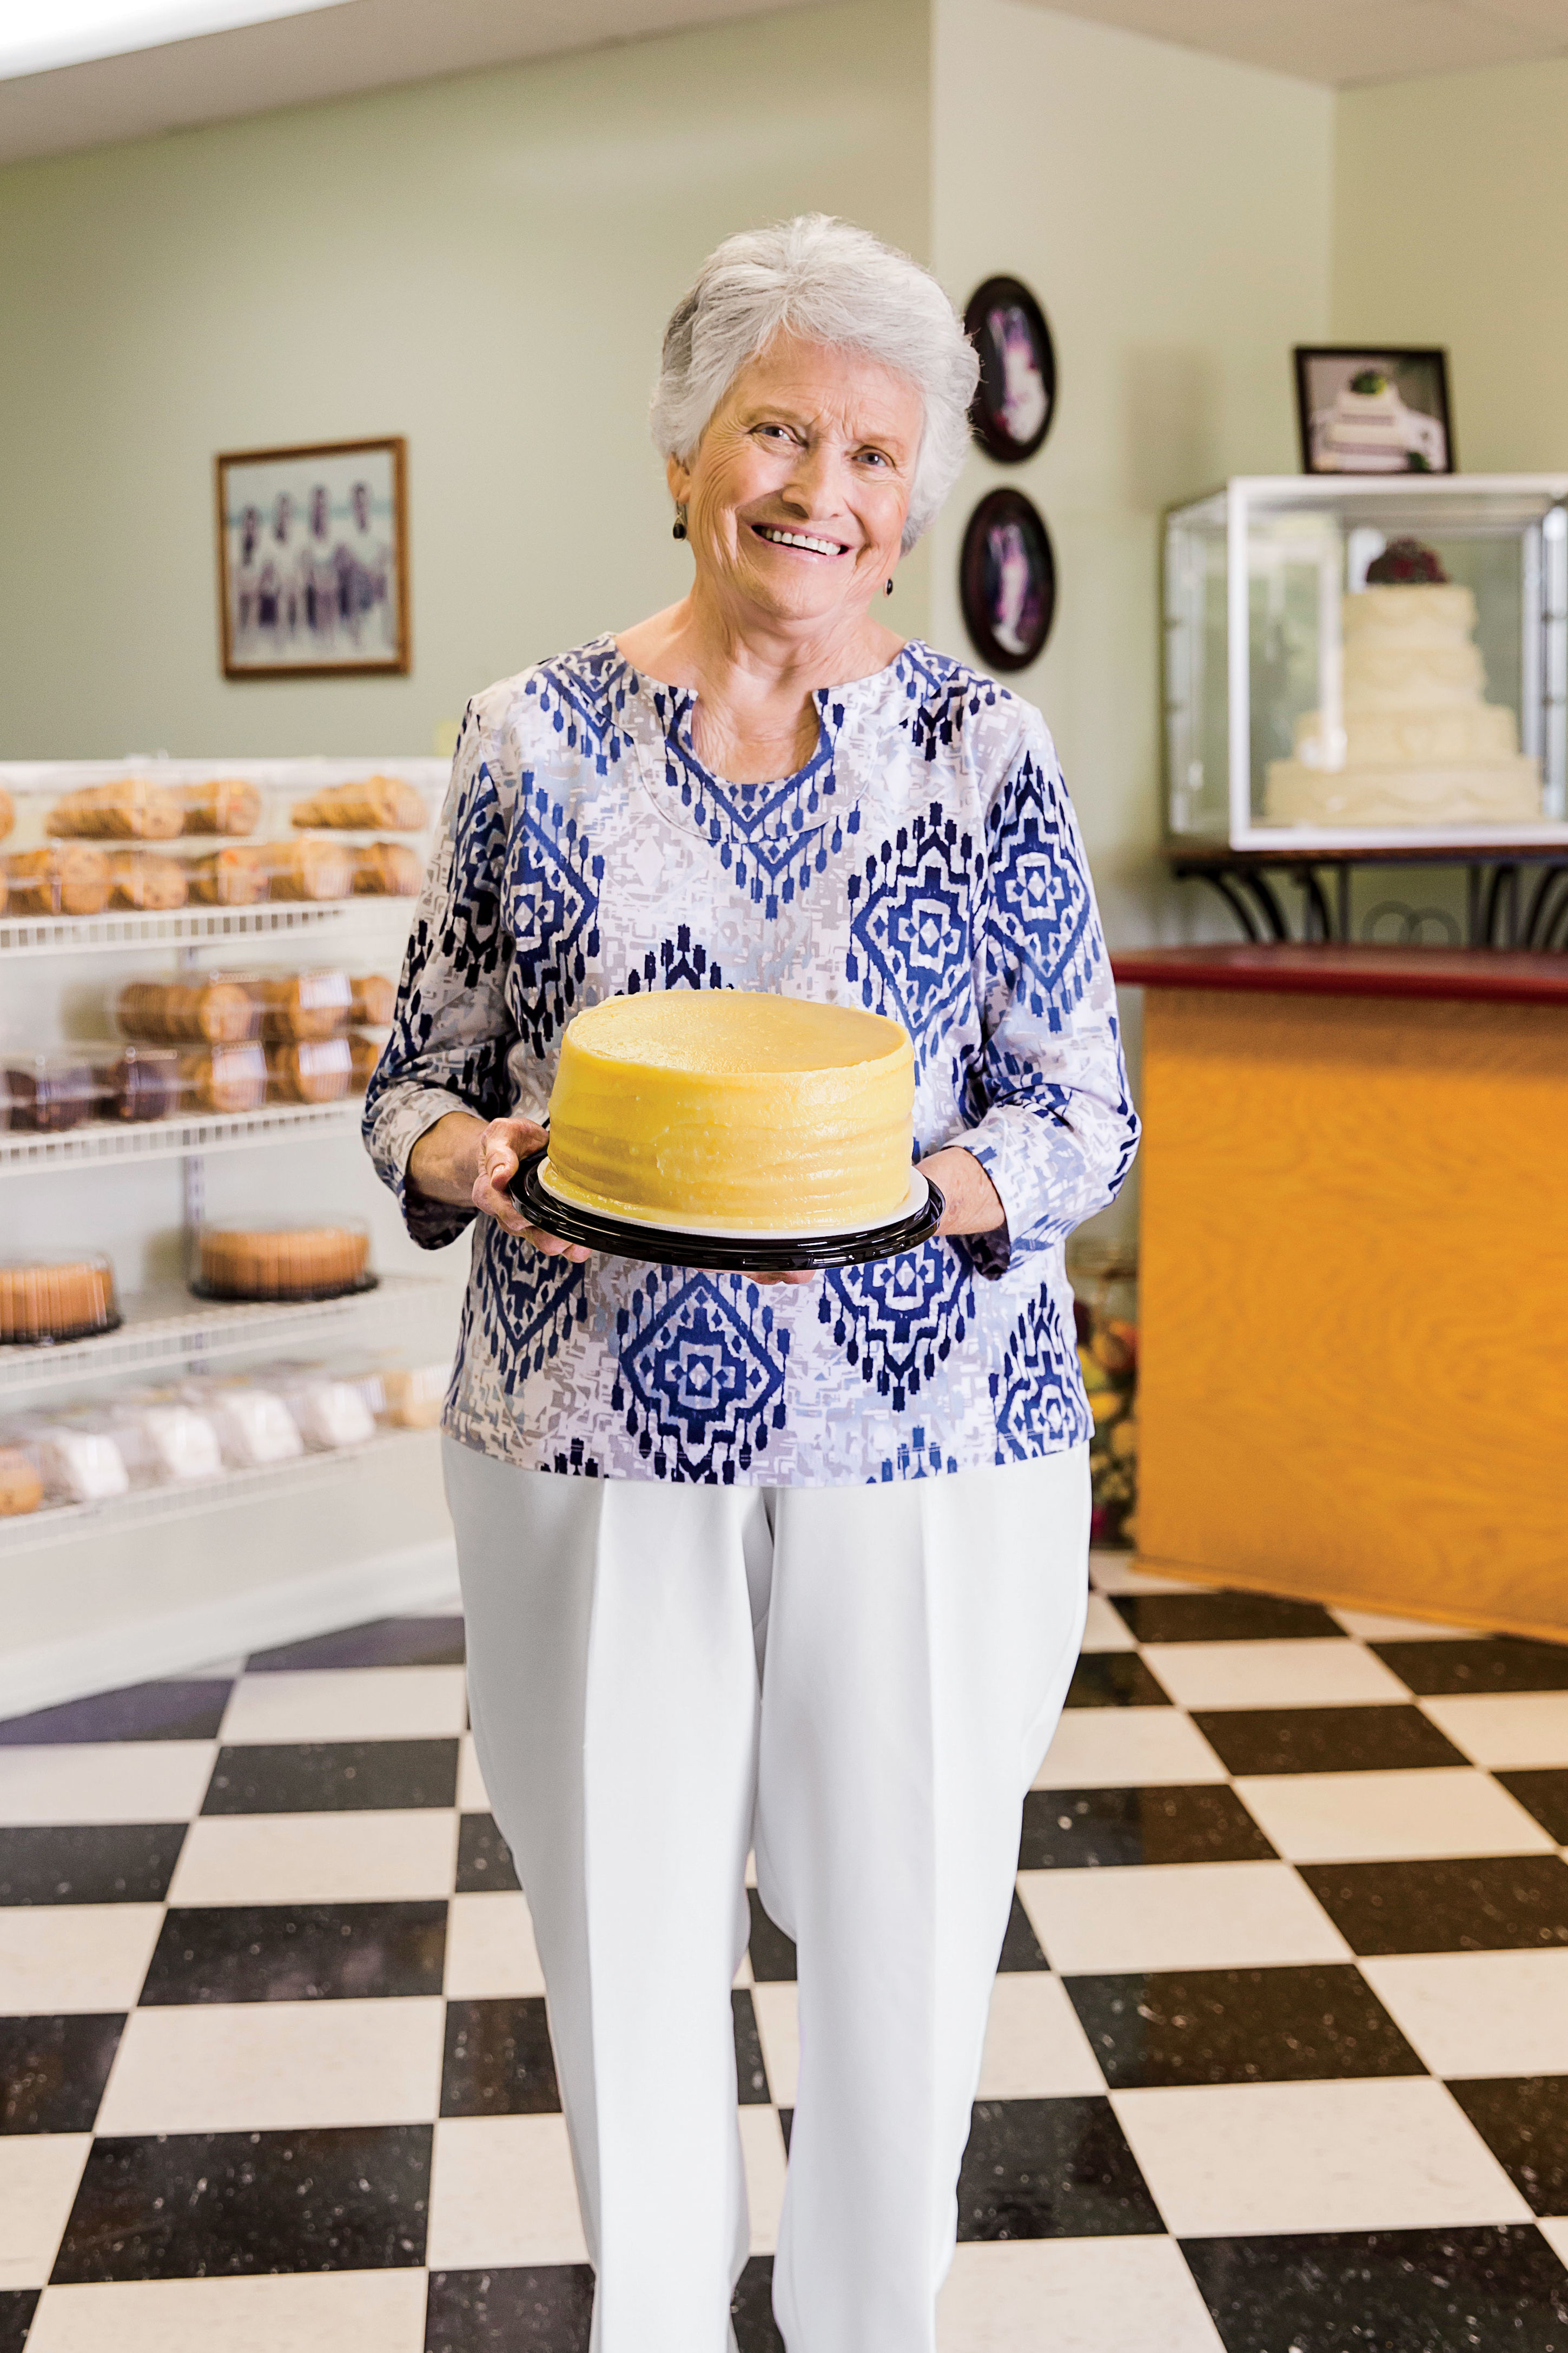 Meet the Legendary Cake Ladies of Andalusia, Alabama